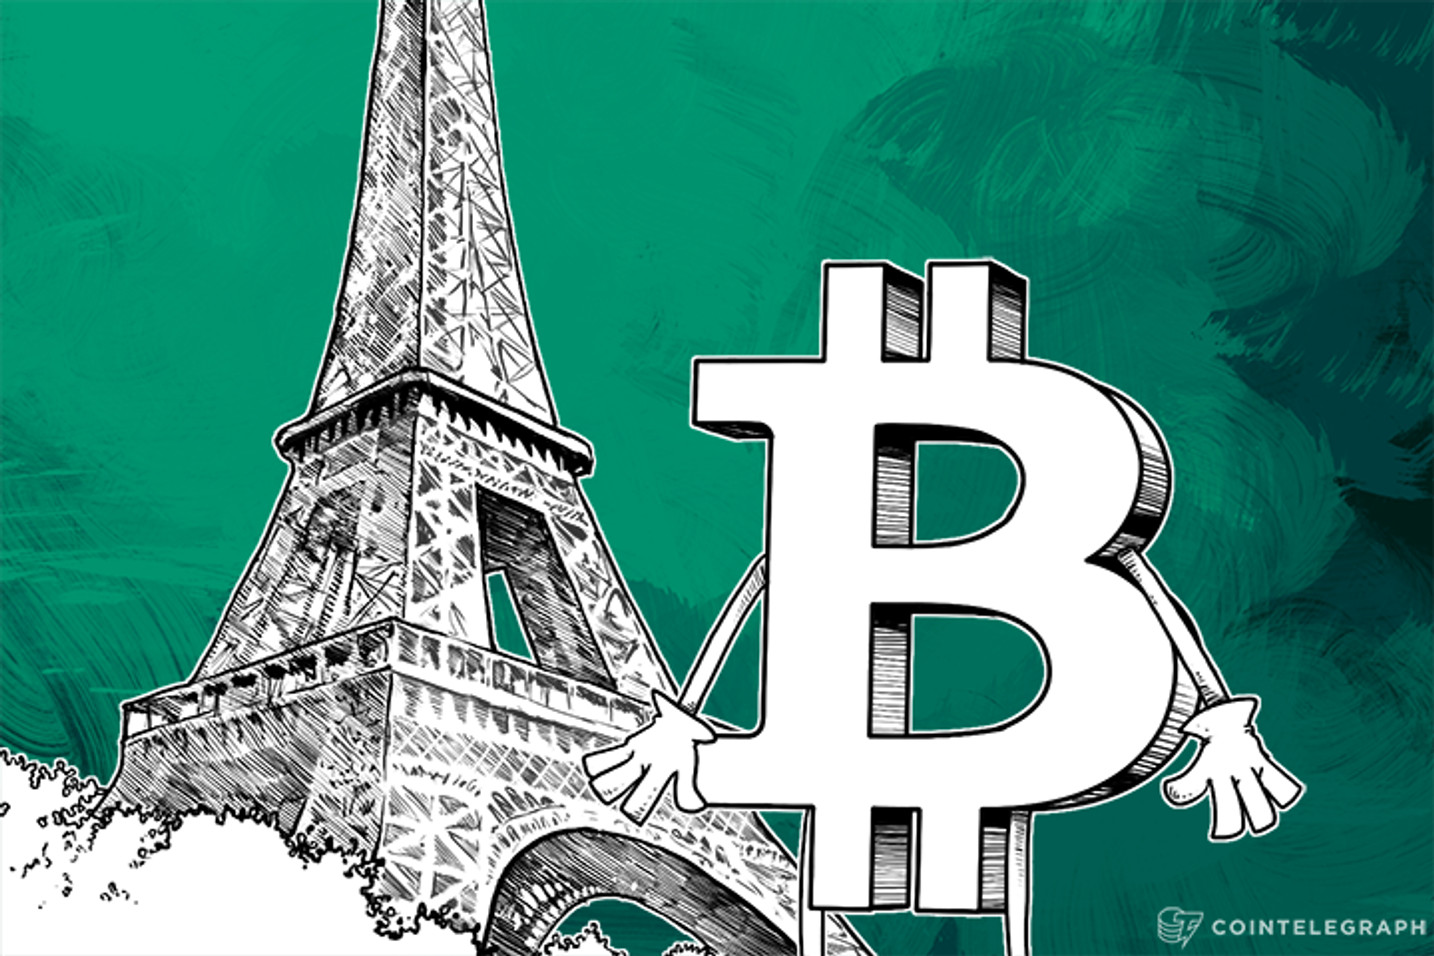 How Bitcoin Can Help Paris Victims: A Cointelegraph Initiative